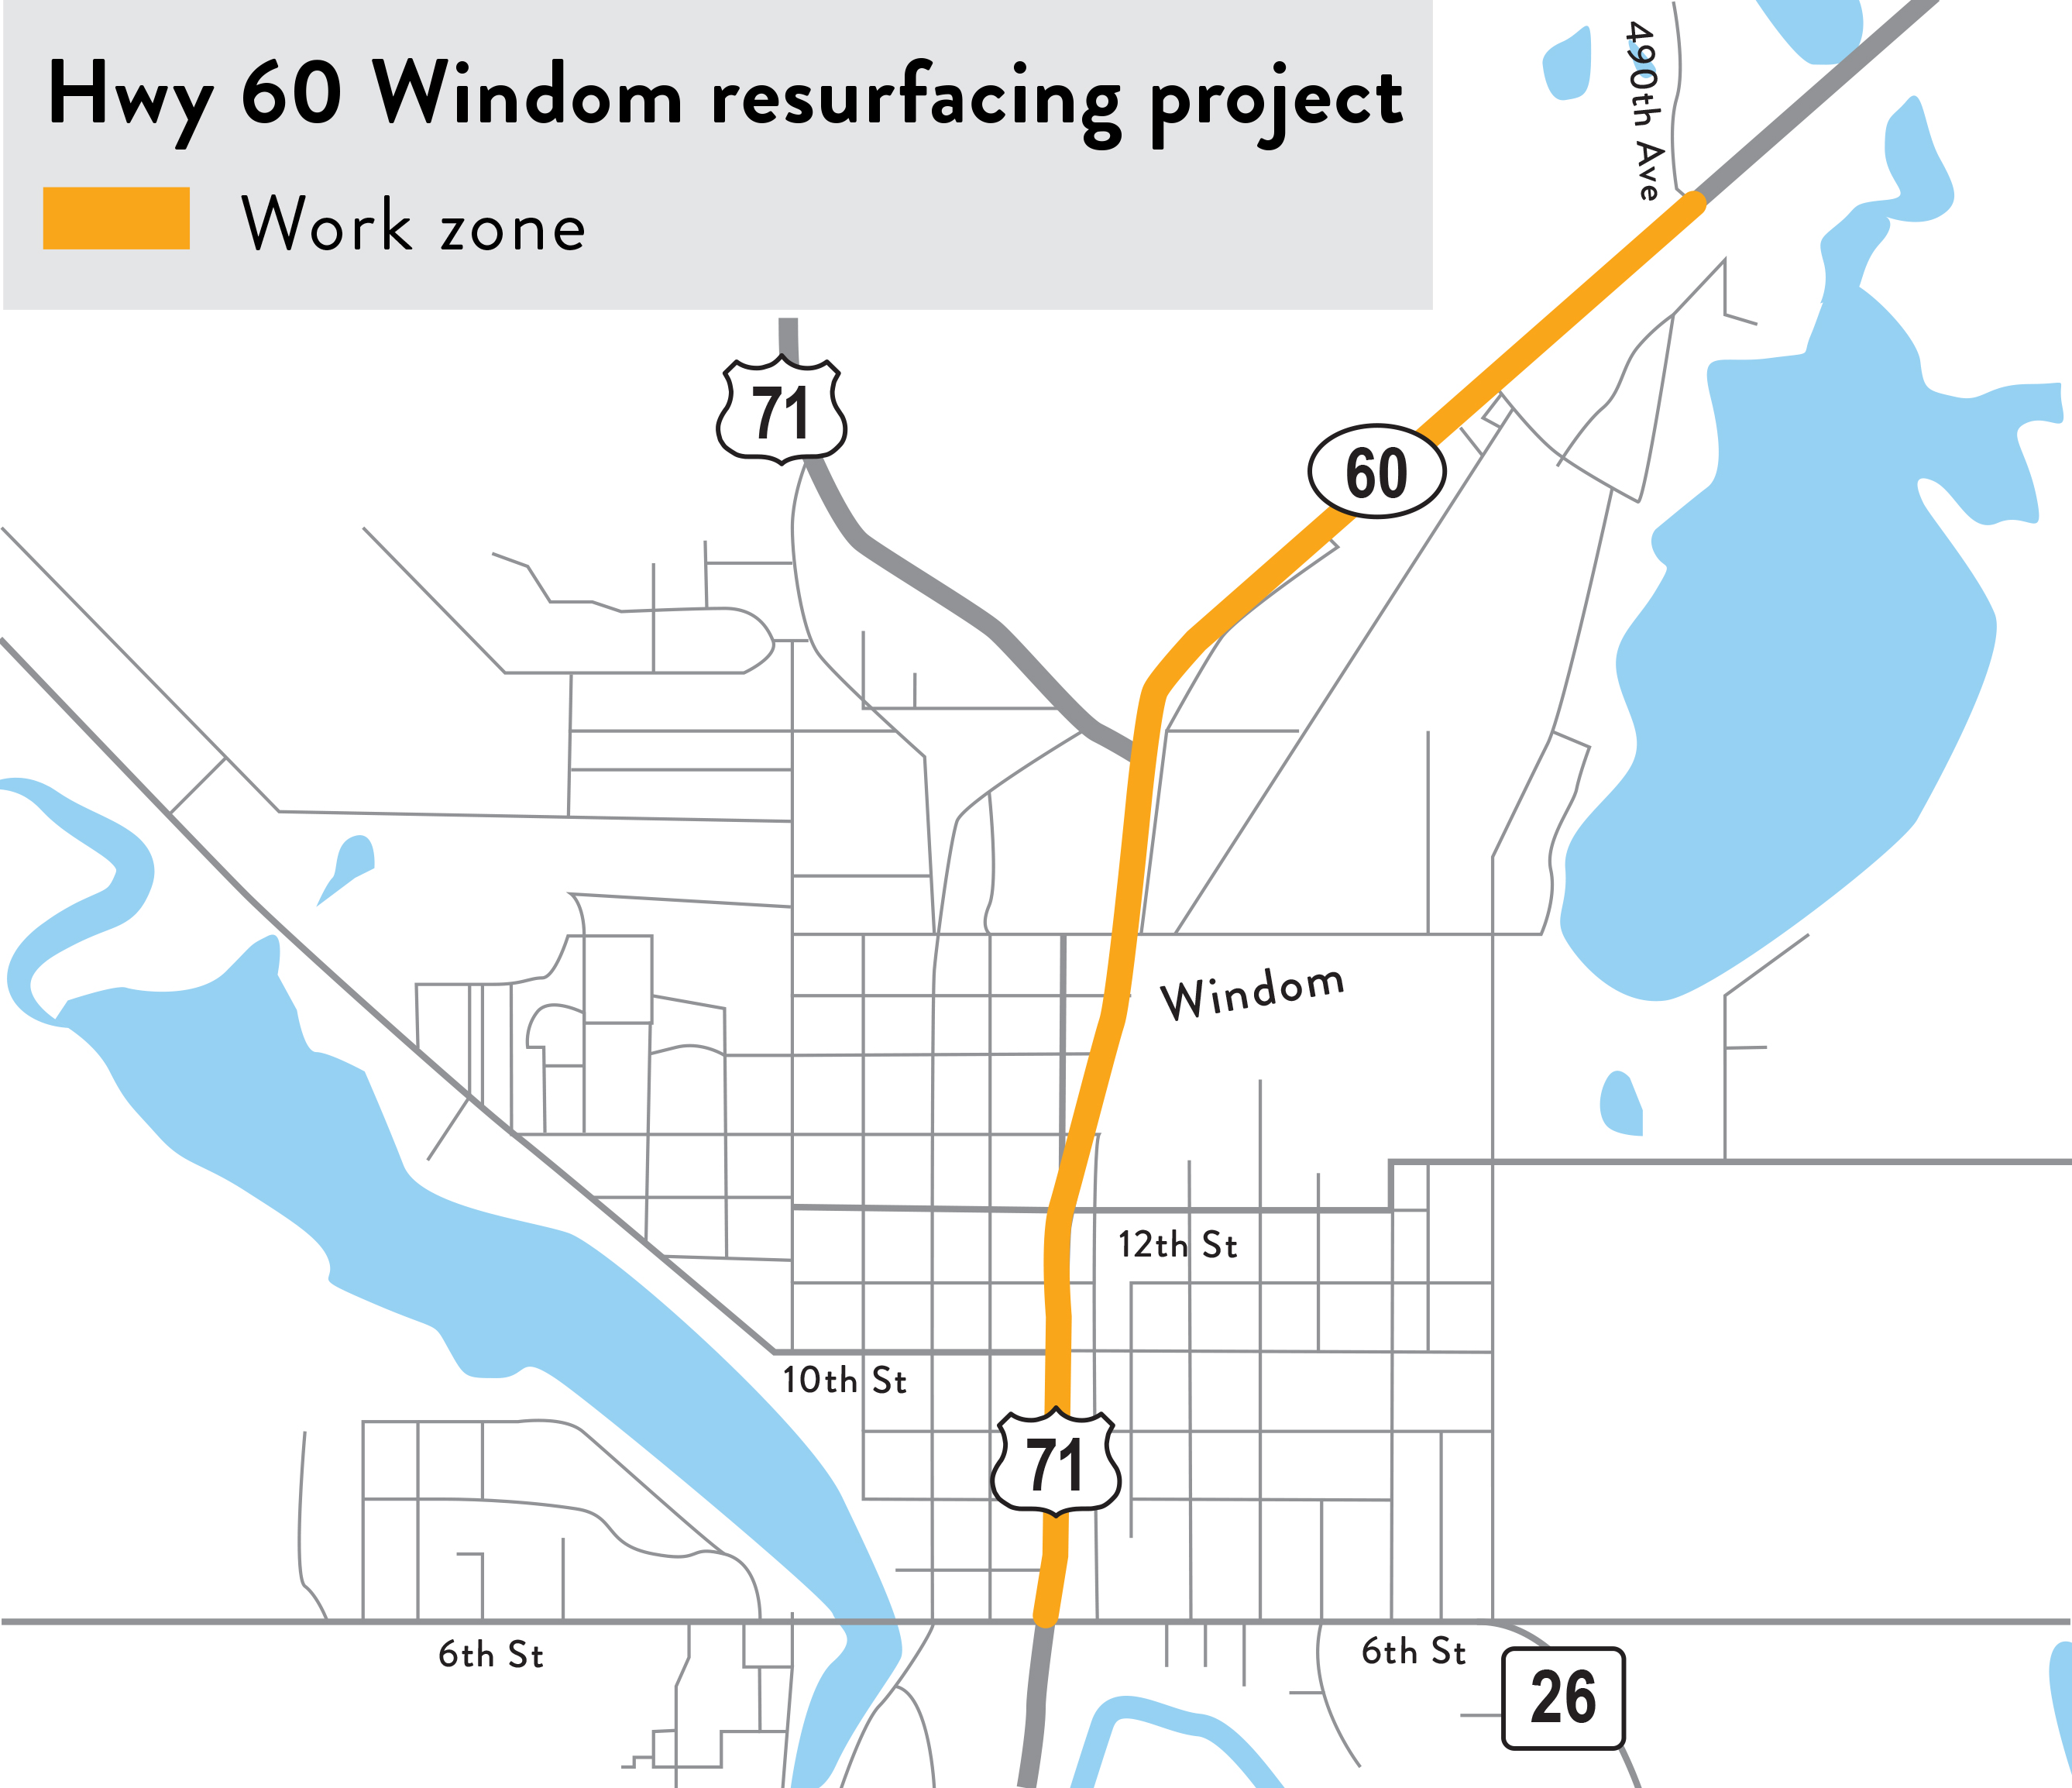 Mn Highway Map, Hwy 60 In Windom Project Map, Mn Highway Map